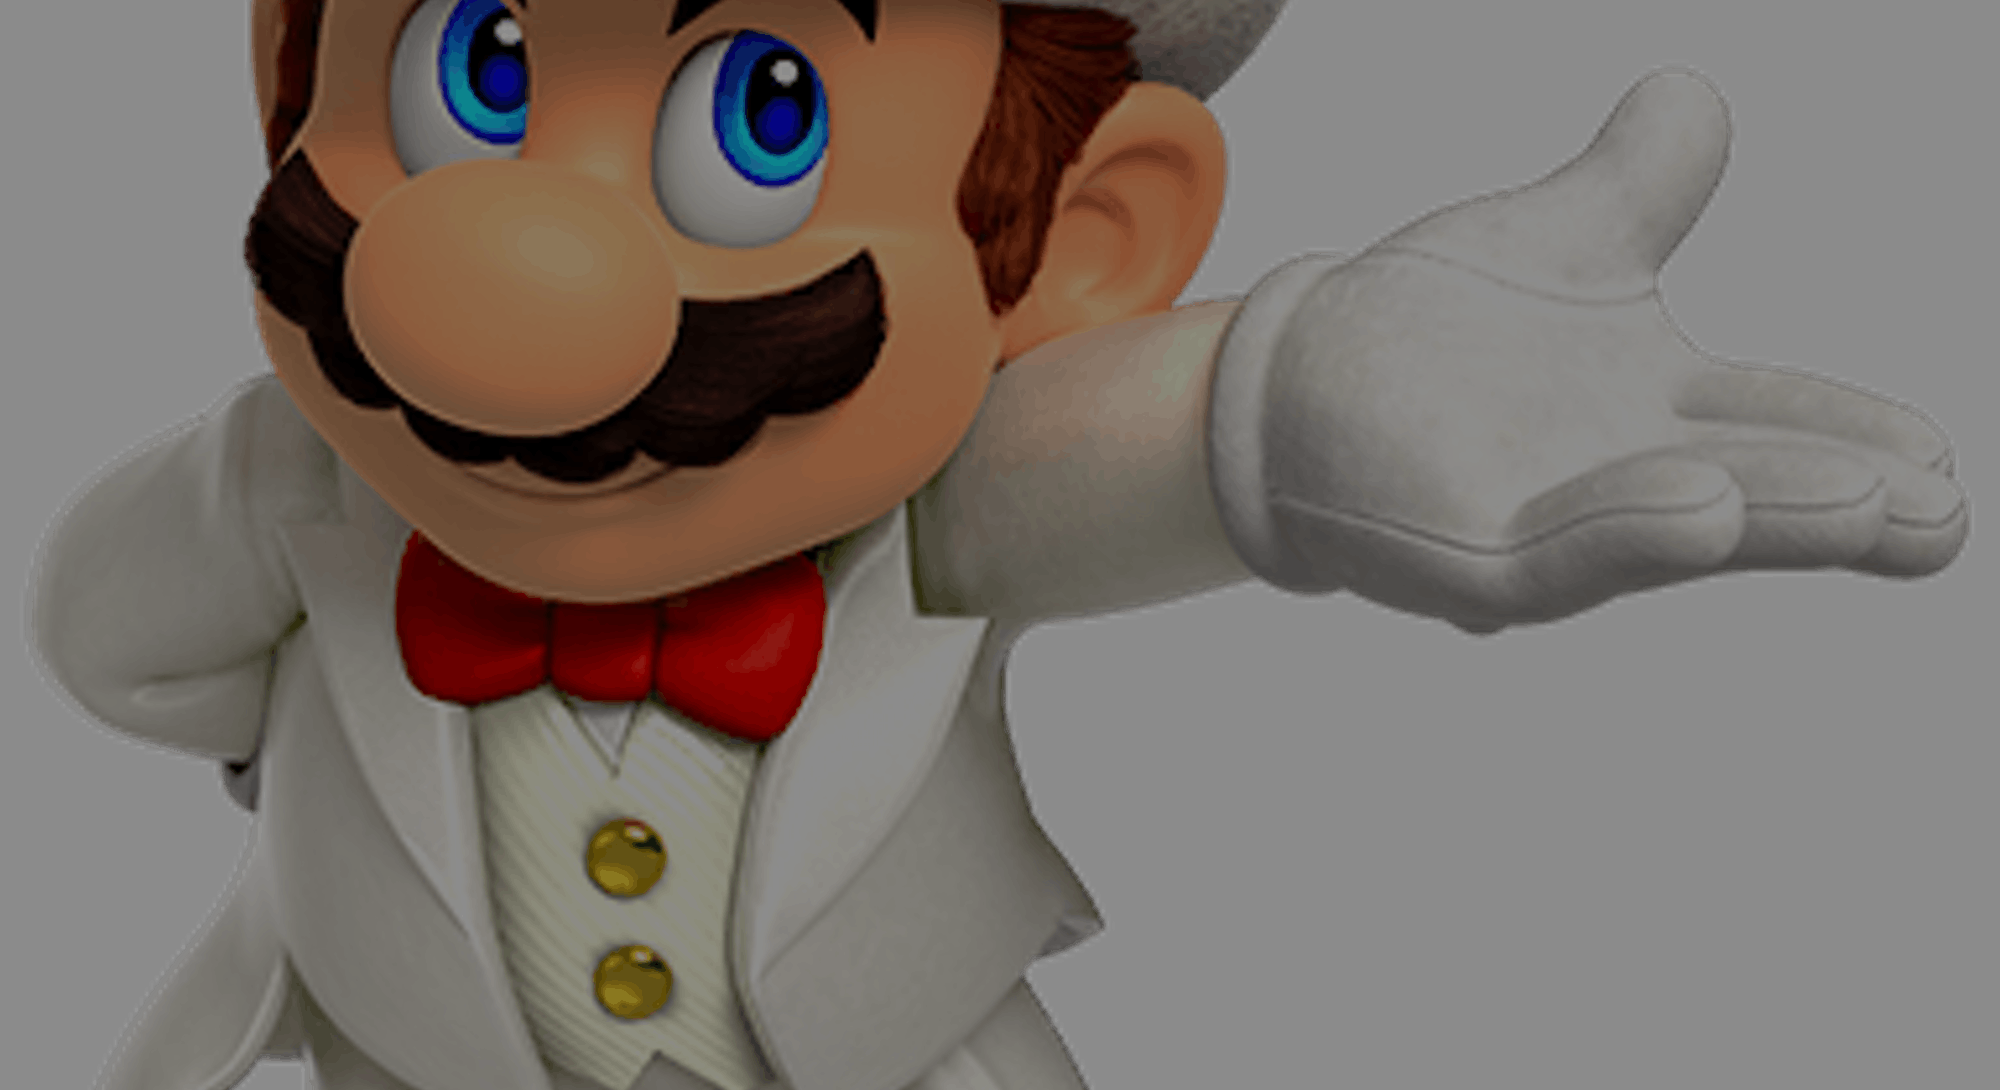 Mario in white suit. Ray tracing. Video games. PC. Gaming. Games. Nintendo.